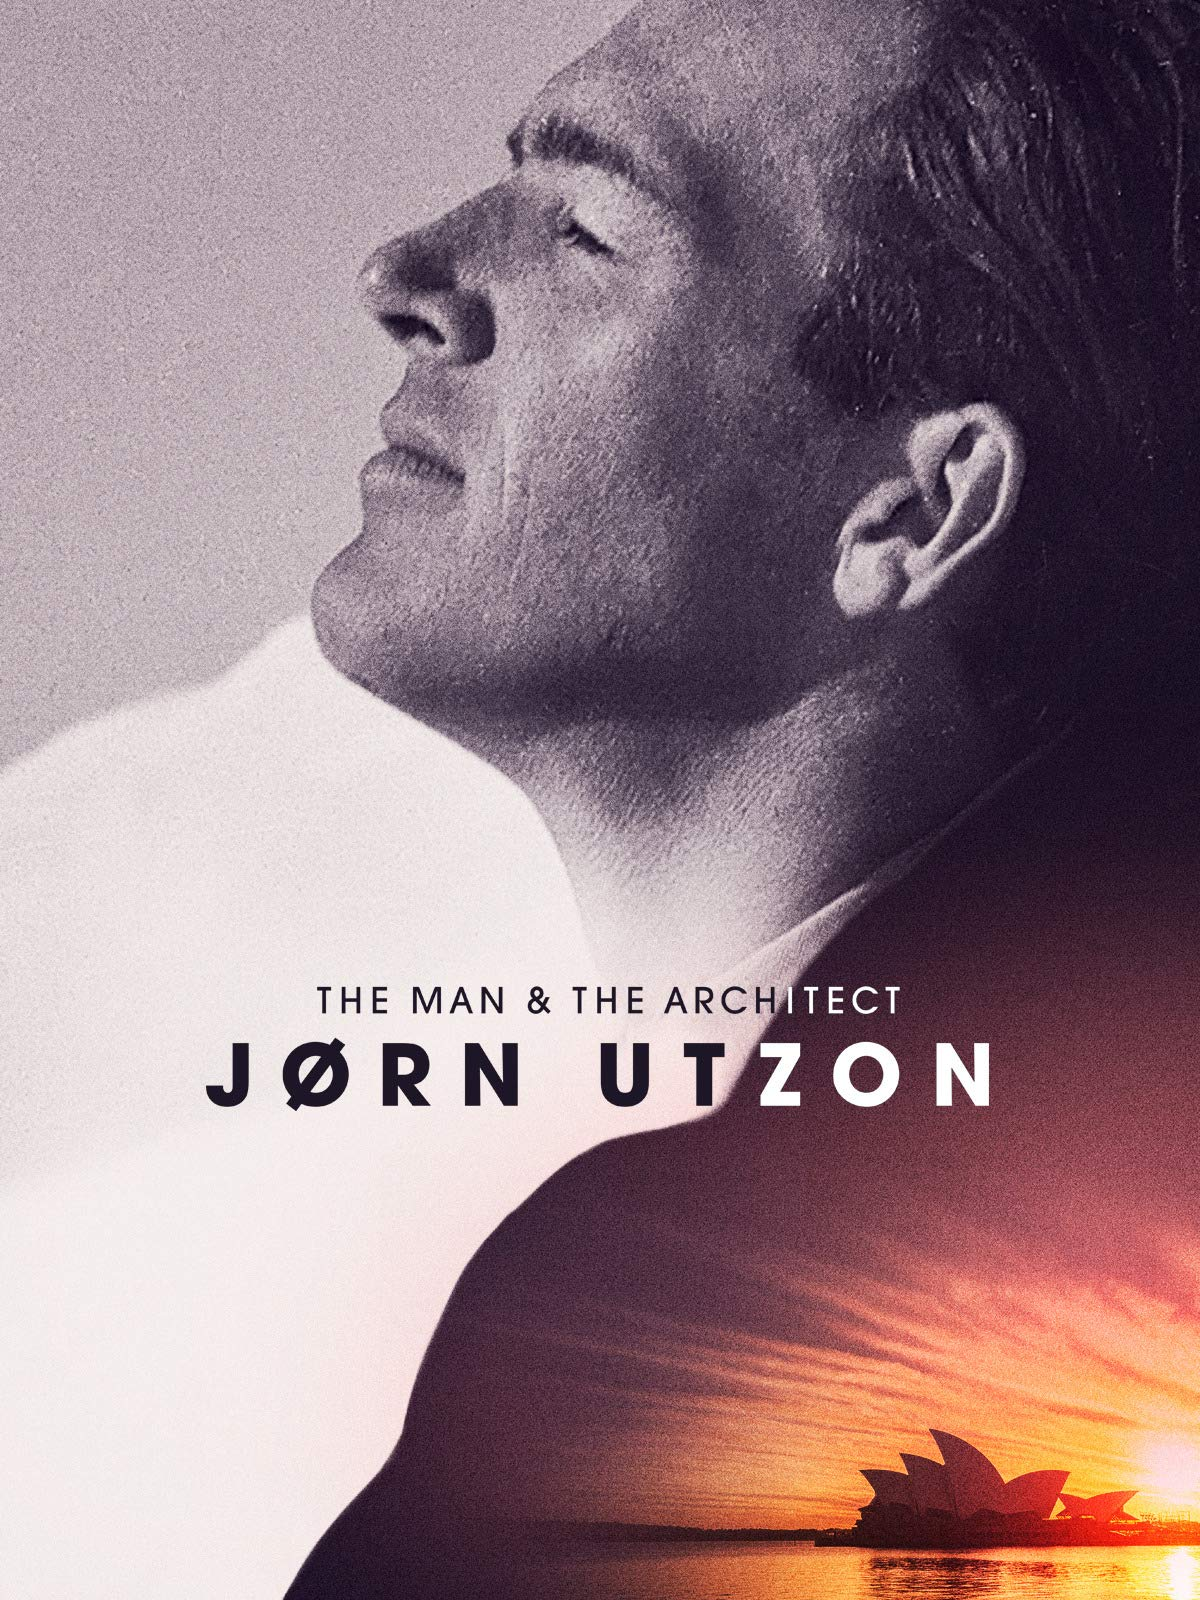 Image result for The Man and the Architect: Jorn Utzon